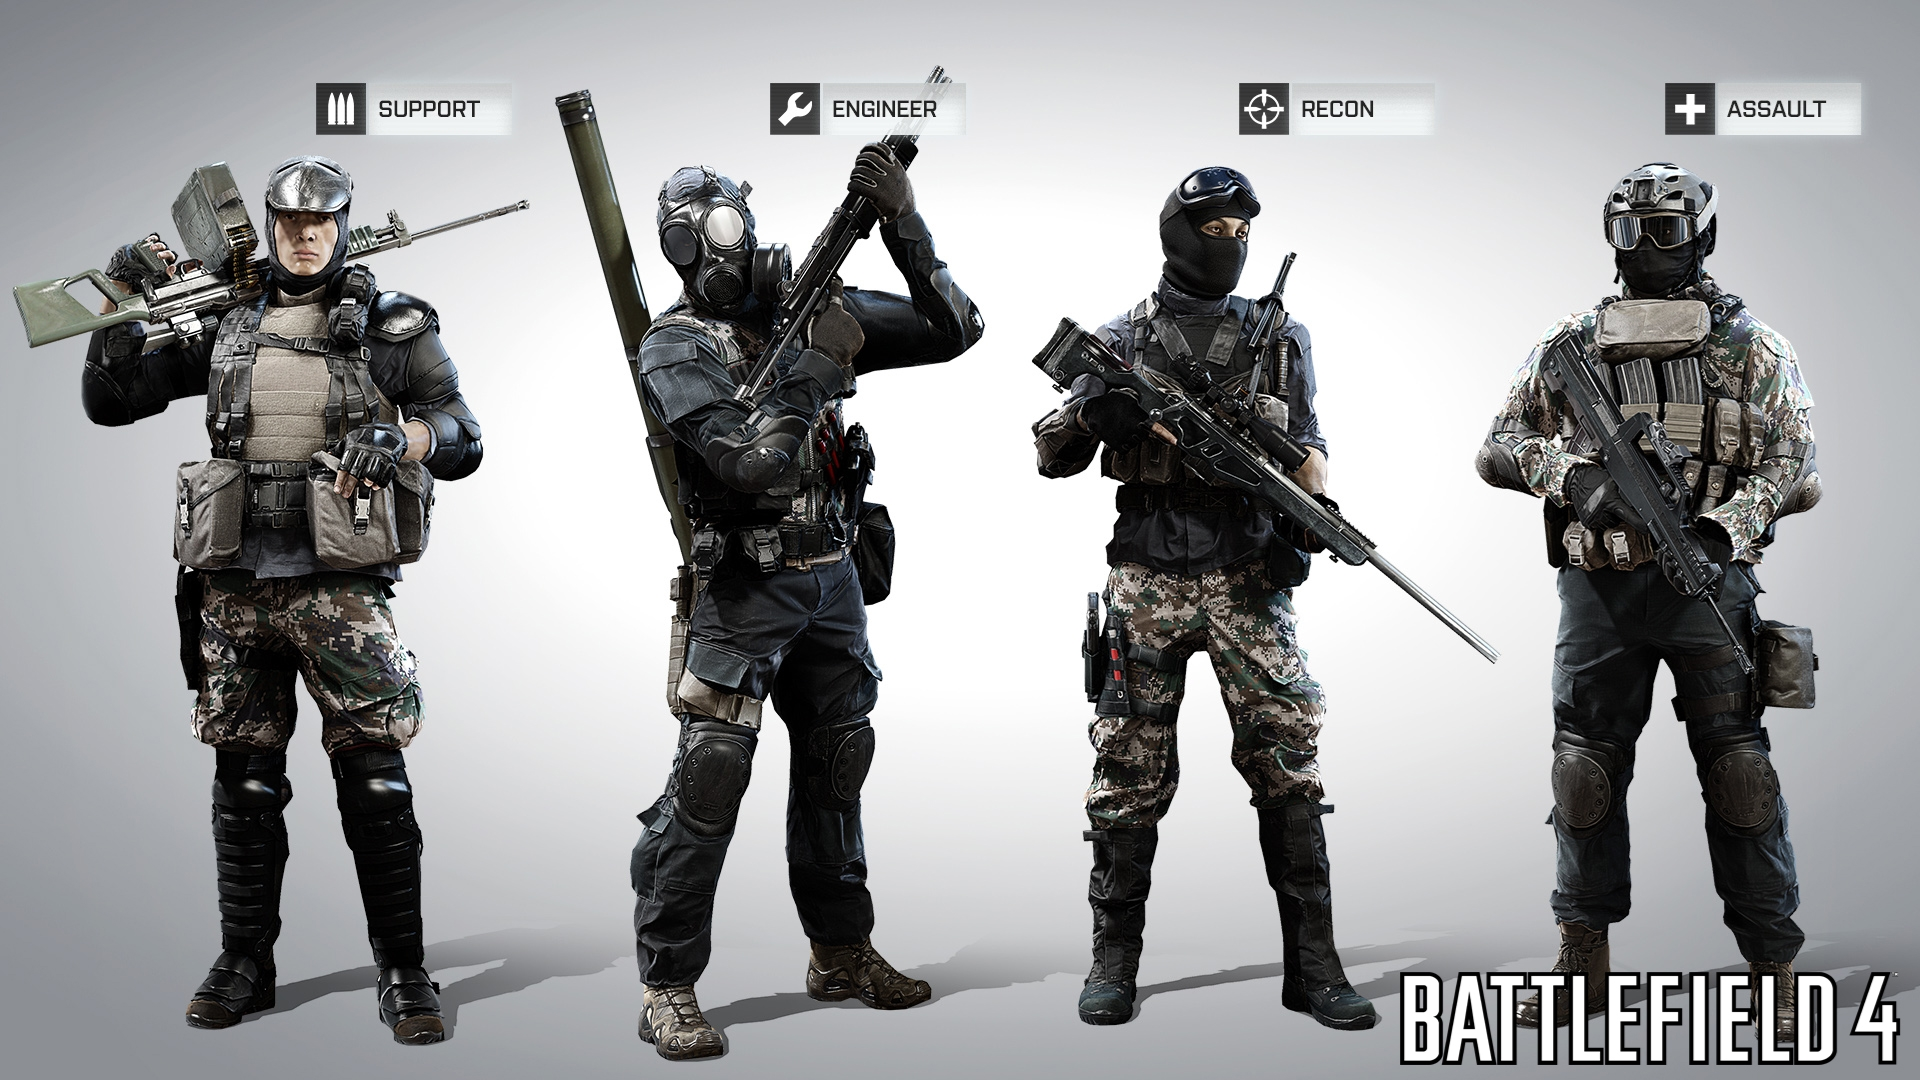 BF4 Teamwork and Classes